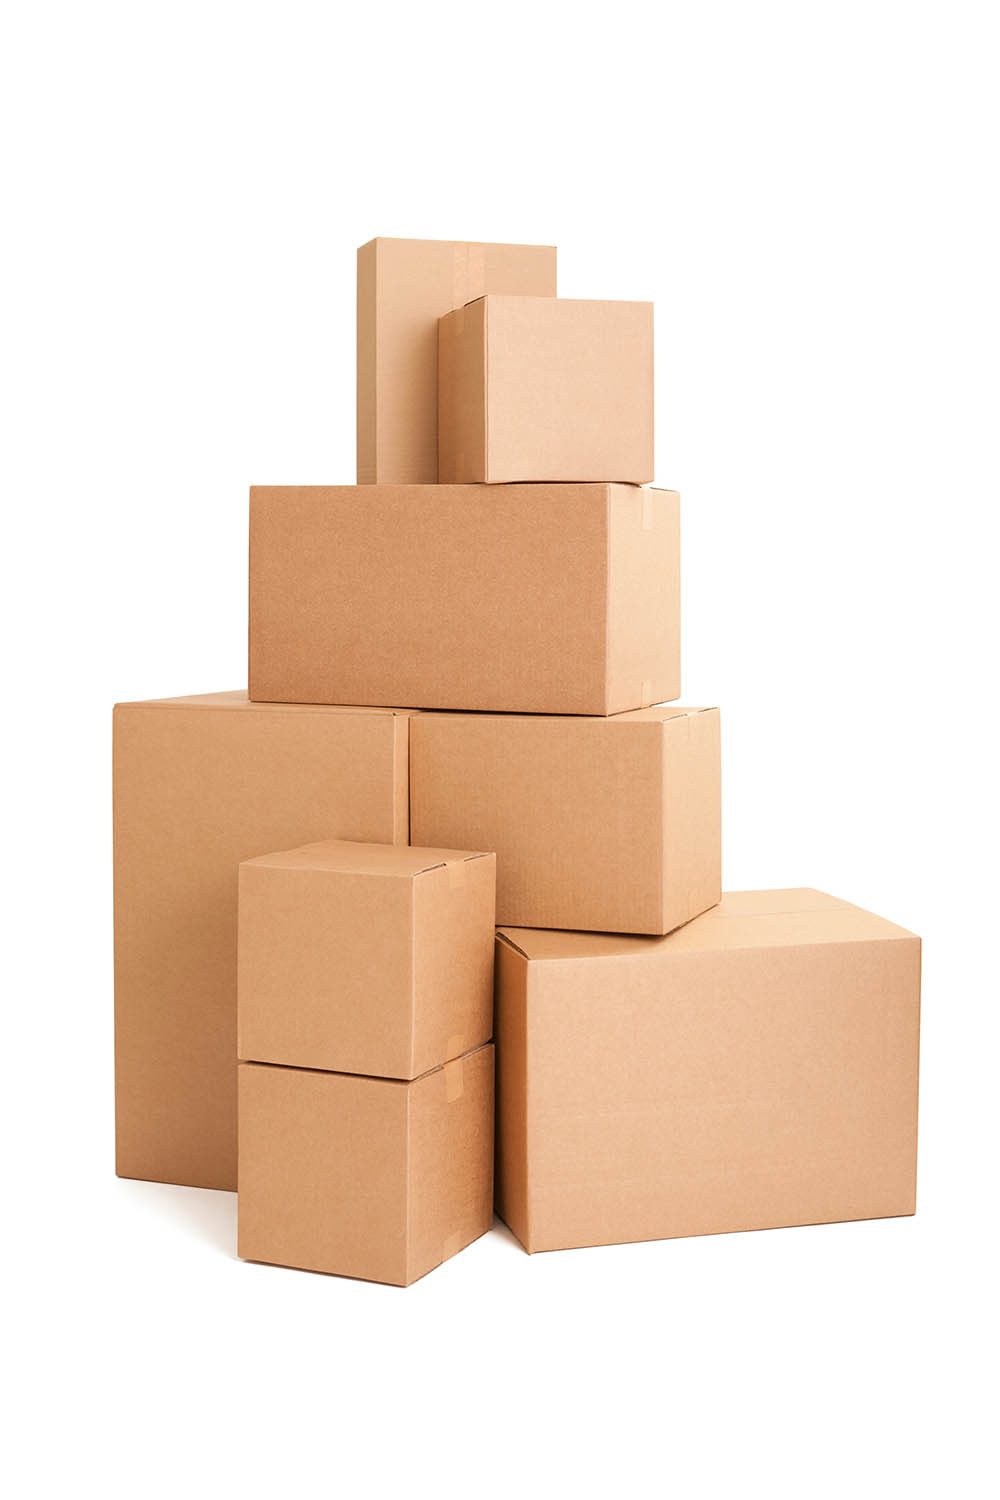 Image of corrugated boxes stacked up